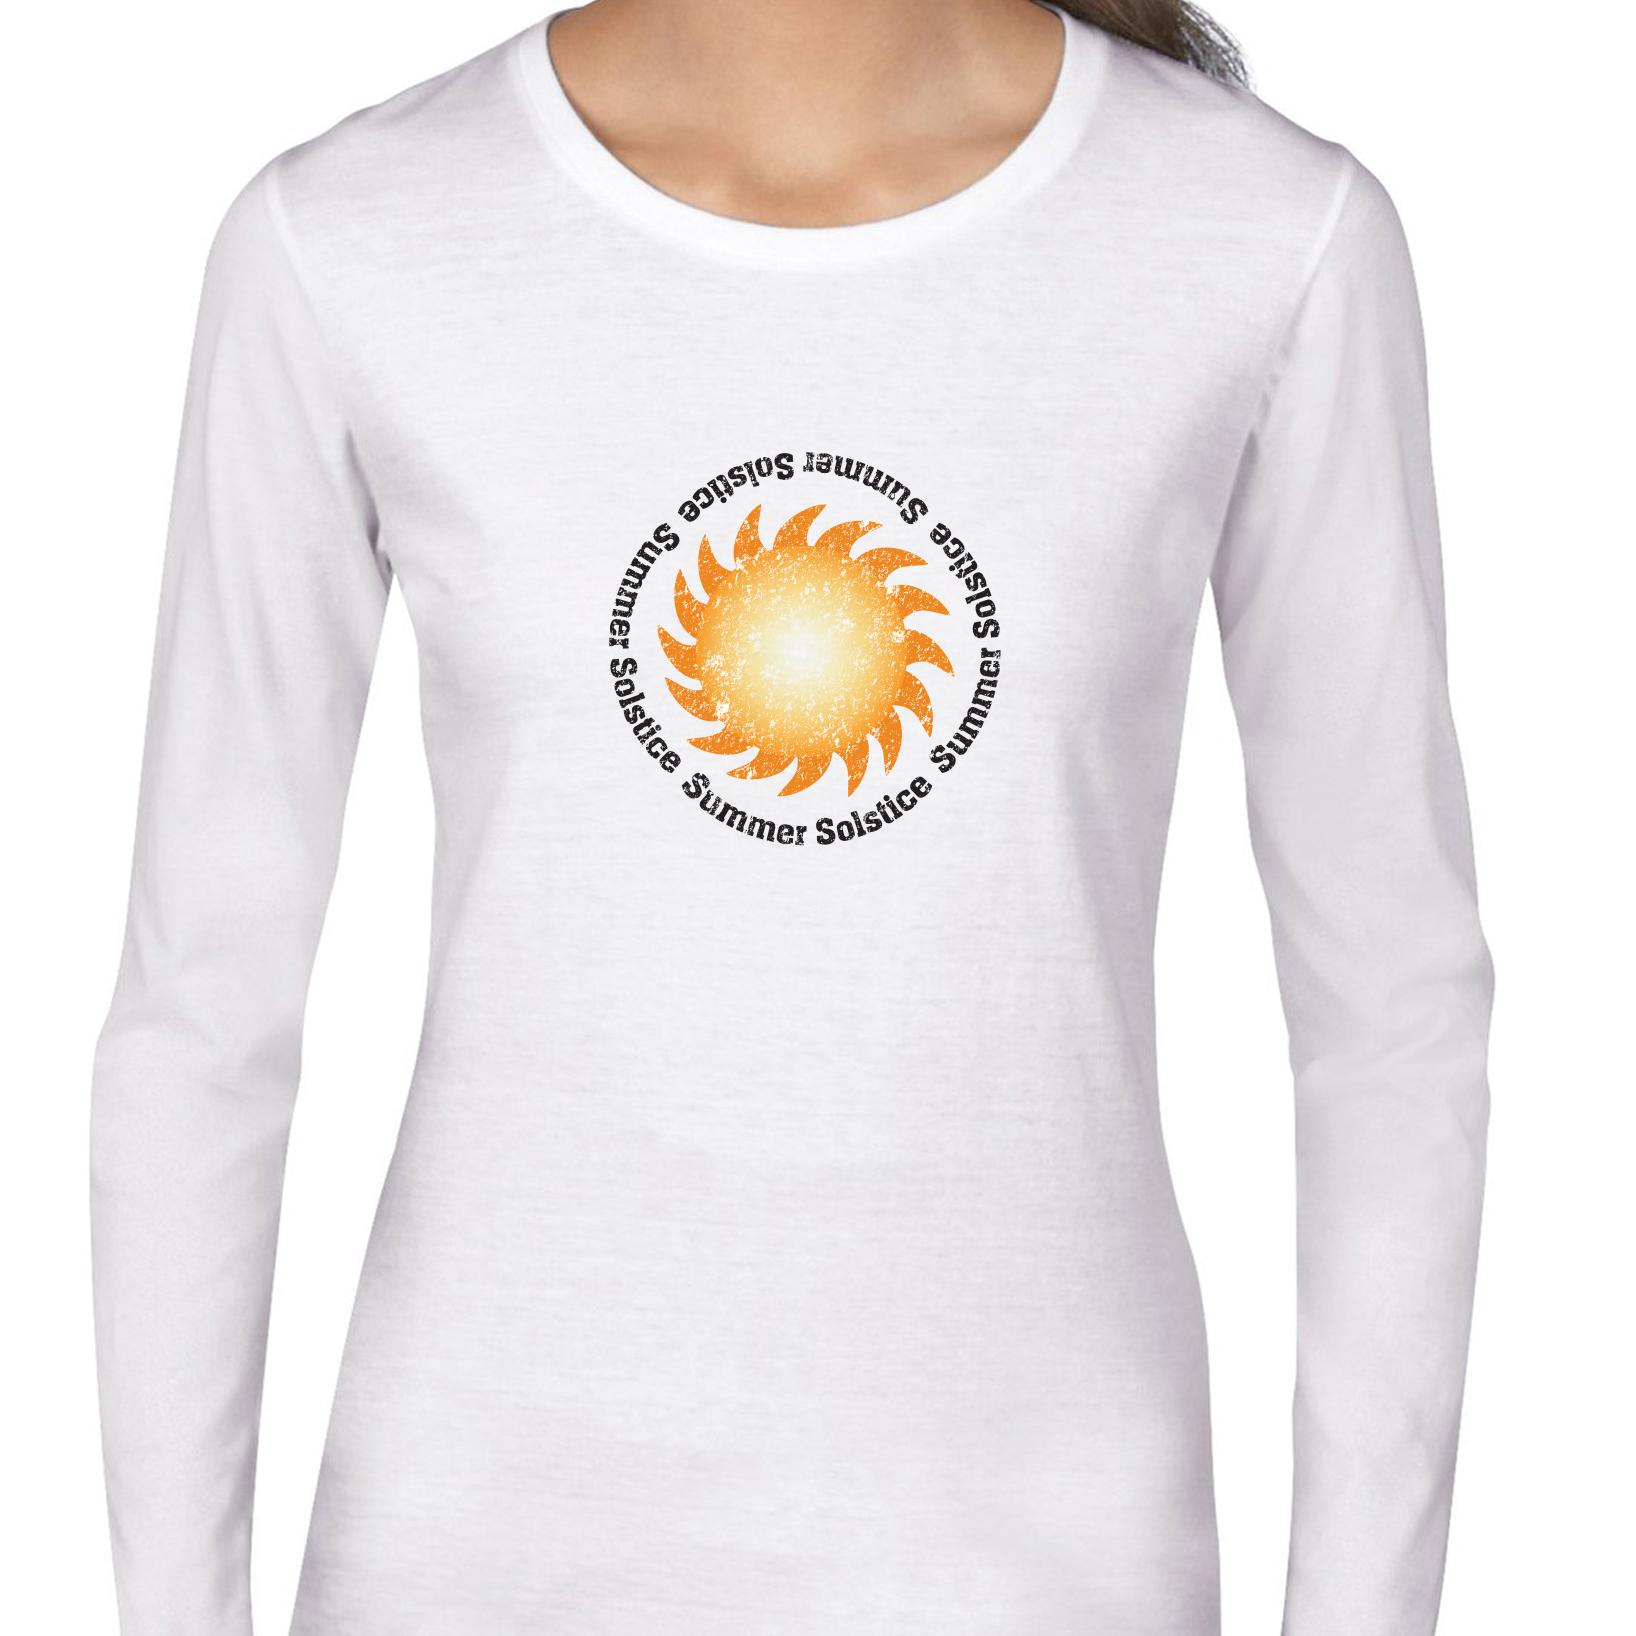 Summer Solstice Awesome Big Bright Sun Graphic Women